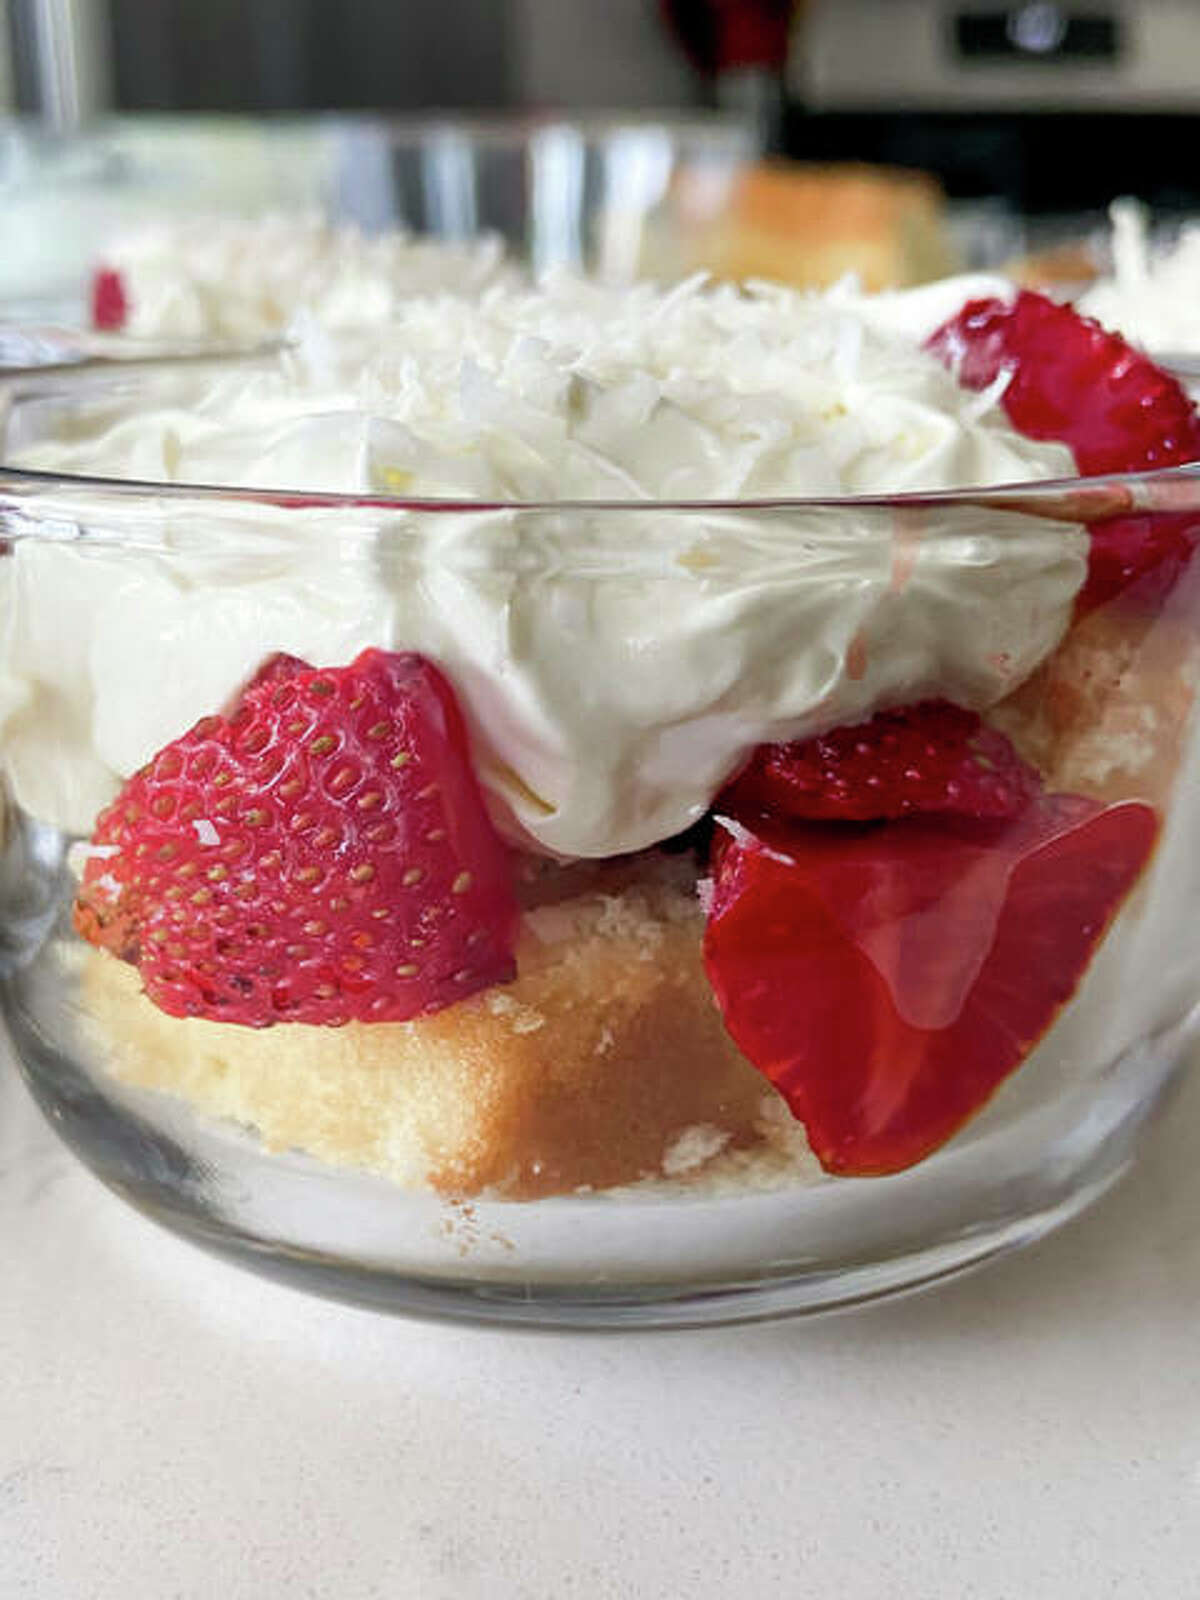 Creator Rachel Tritsch says the Strawberry and Lemon Trifles dish is a citrus and sweet, flavor-packed dessert that is perfect for summer.